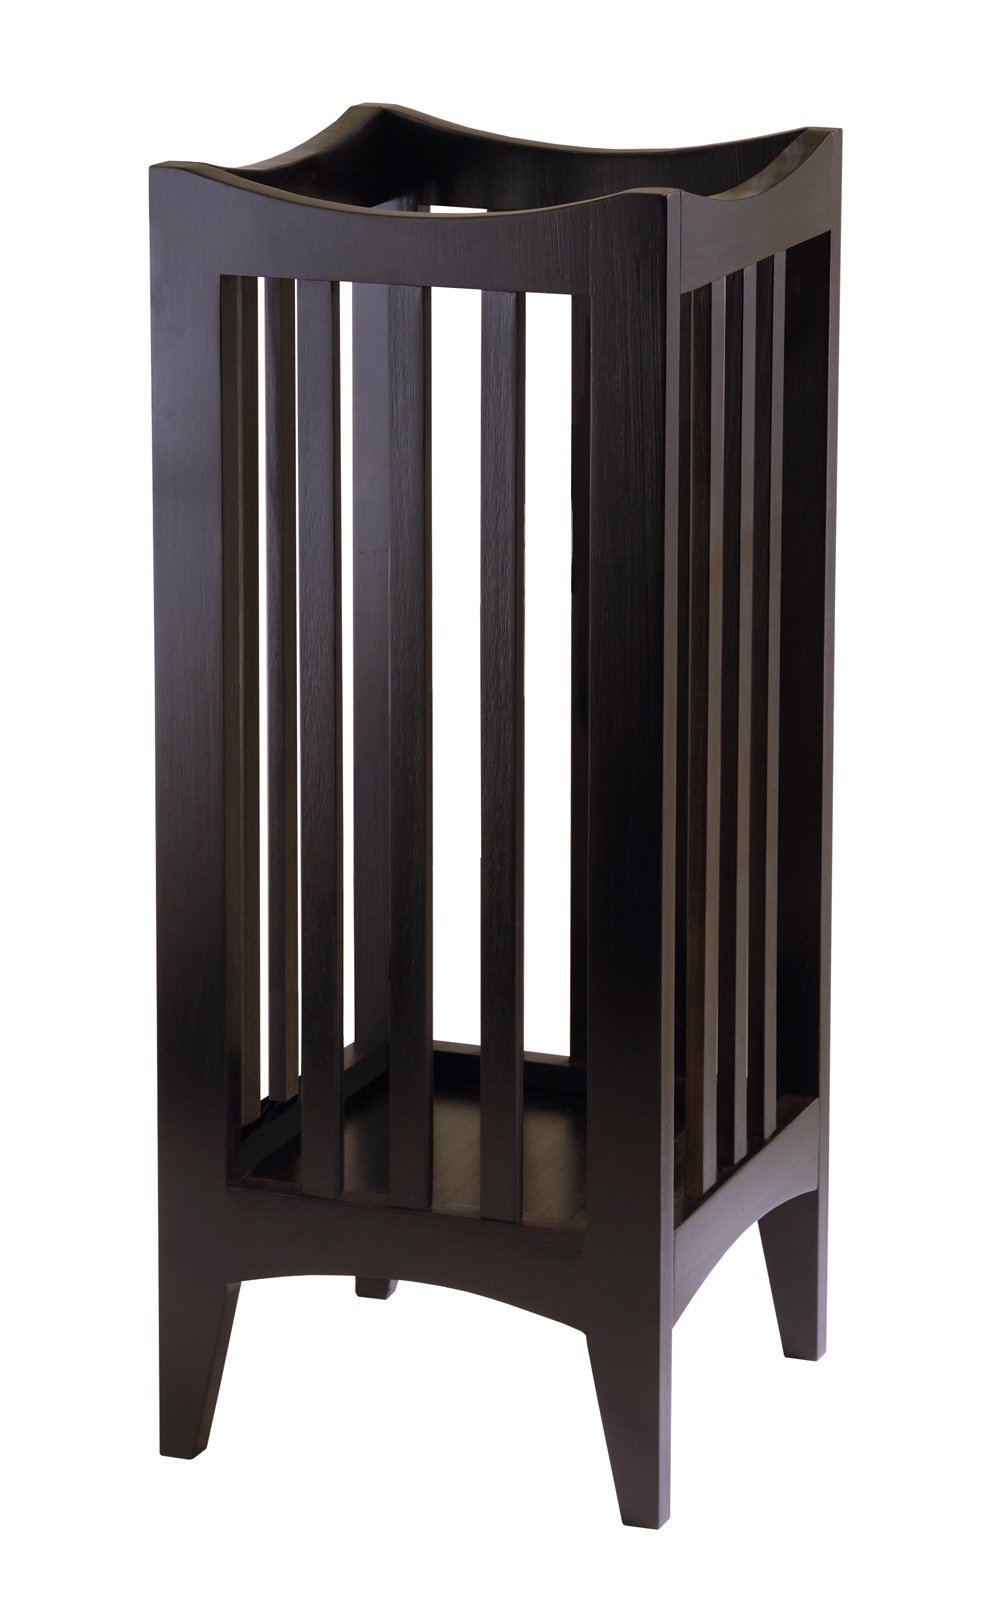 Winsome Wood Portland Umbrella Stand, Cappuccina by Winsome Wood (Image #1)